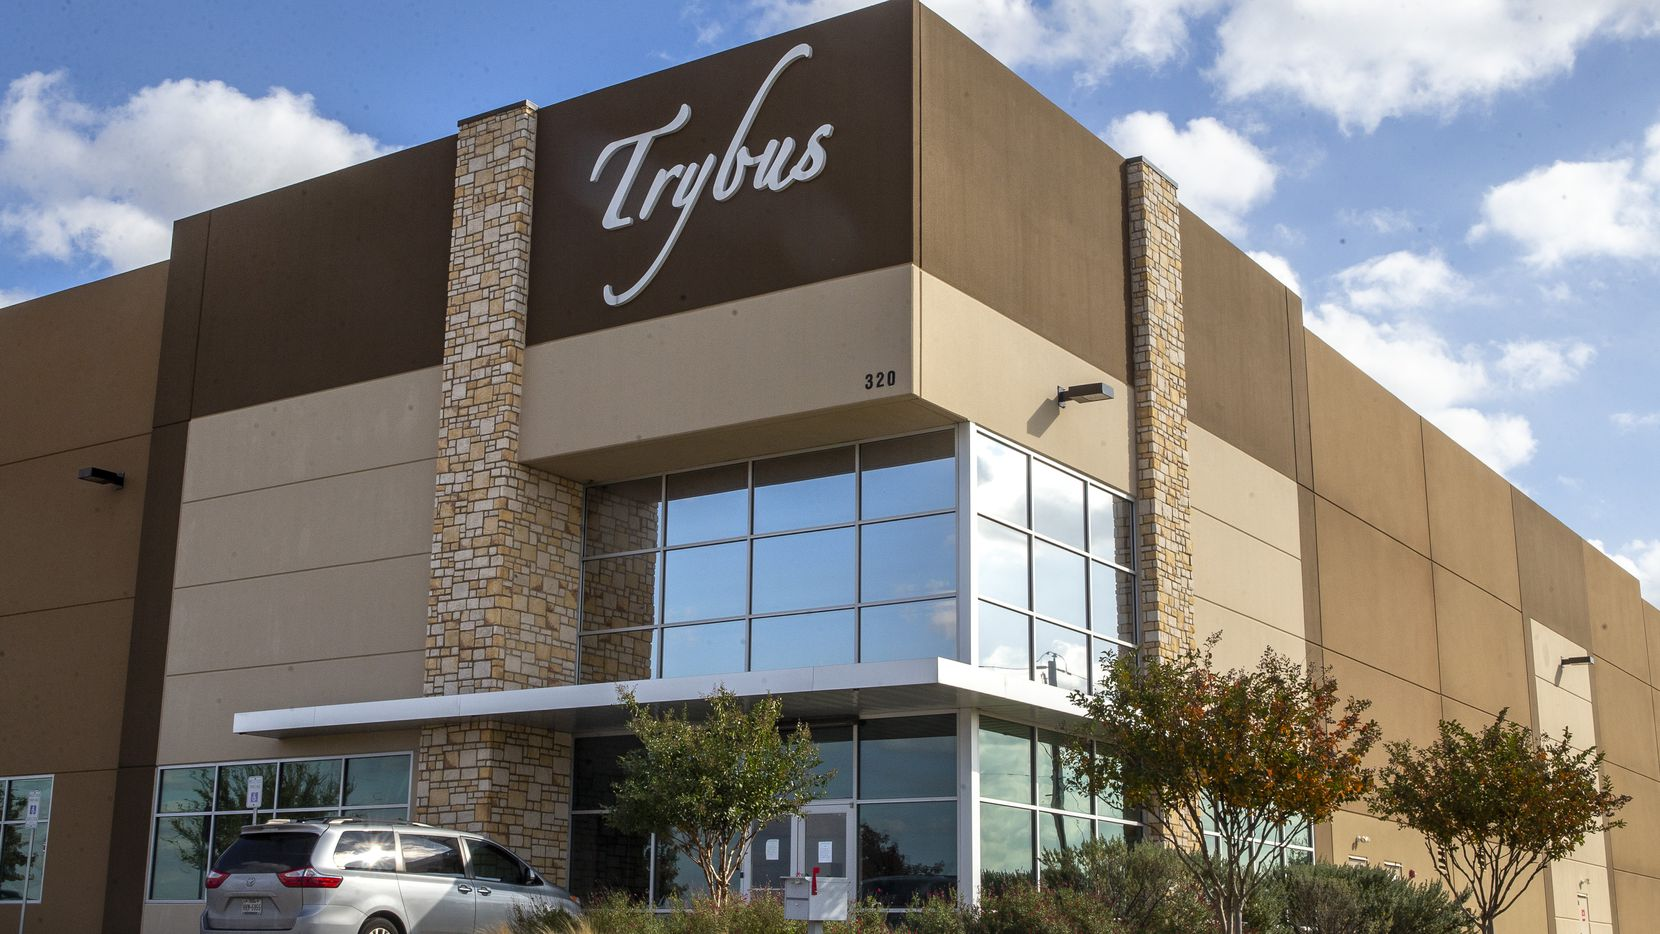 The Trybus factory warehouse in DeSoto.